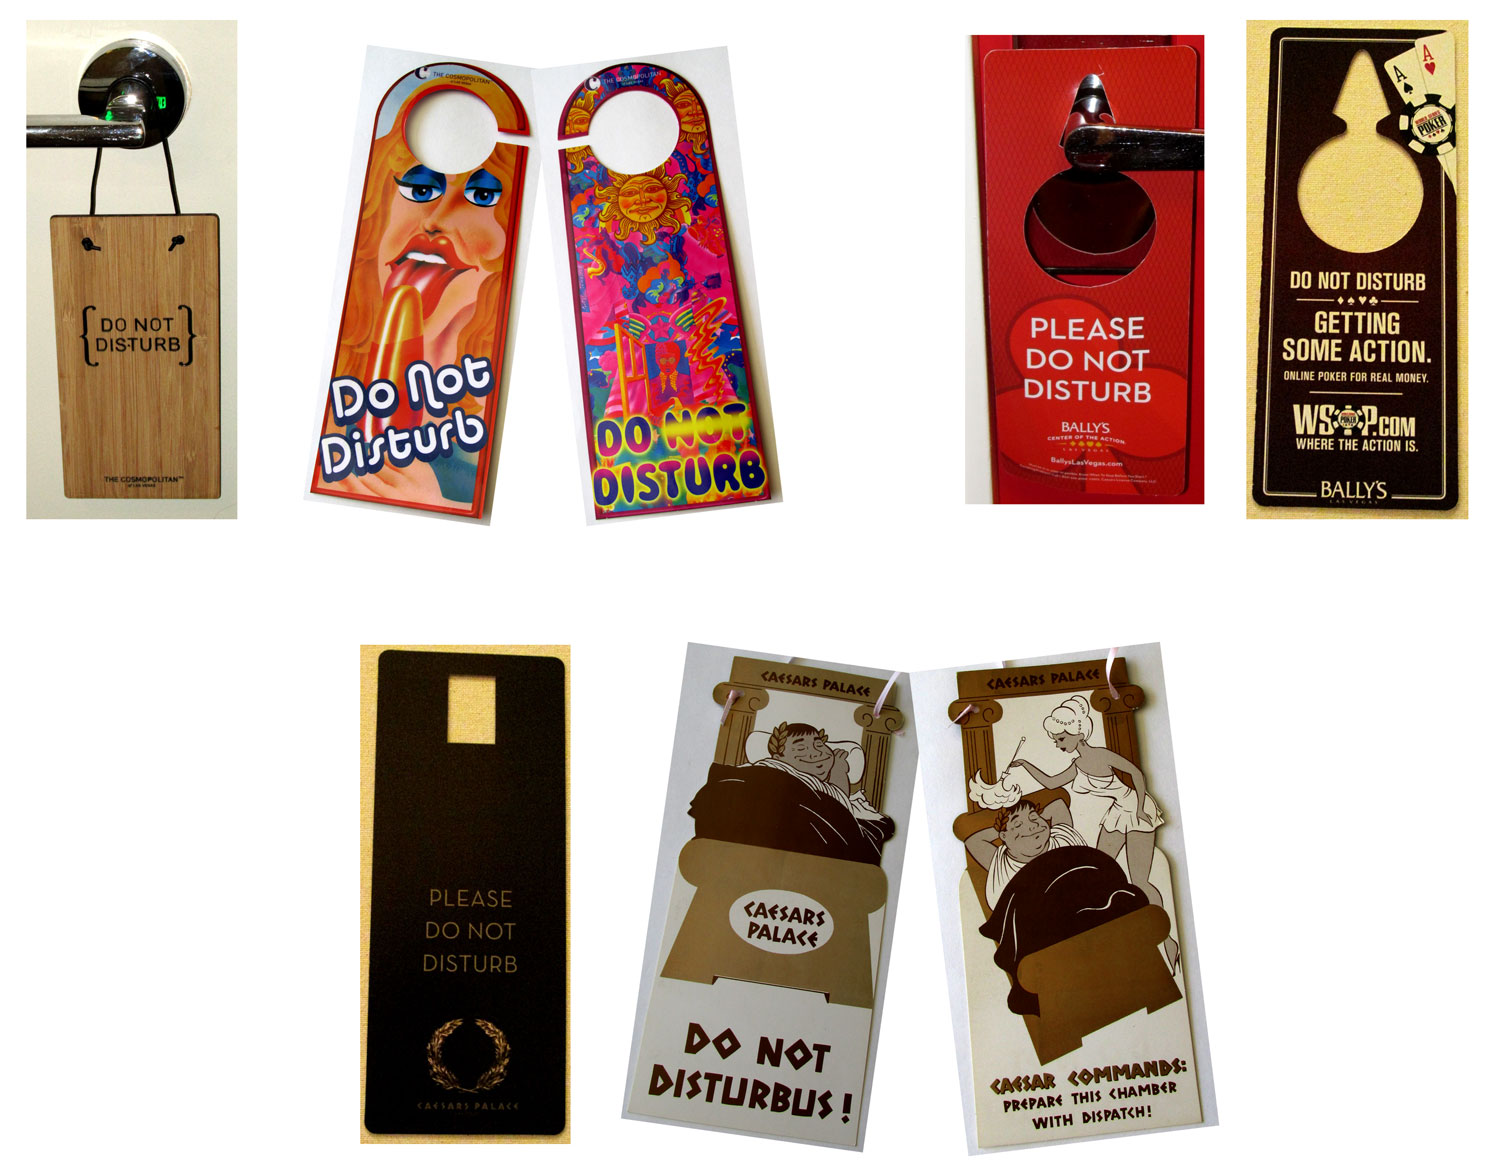 Do Not Disturb signs for The Cosmopolitan of Las Vegas, Bally's and Caesars Palace